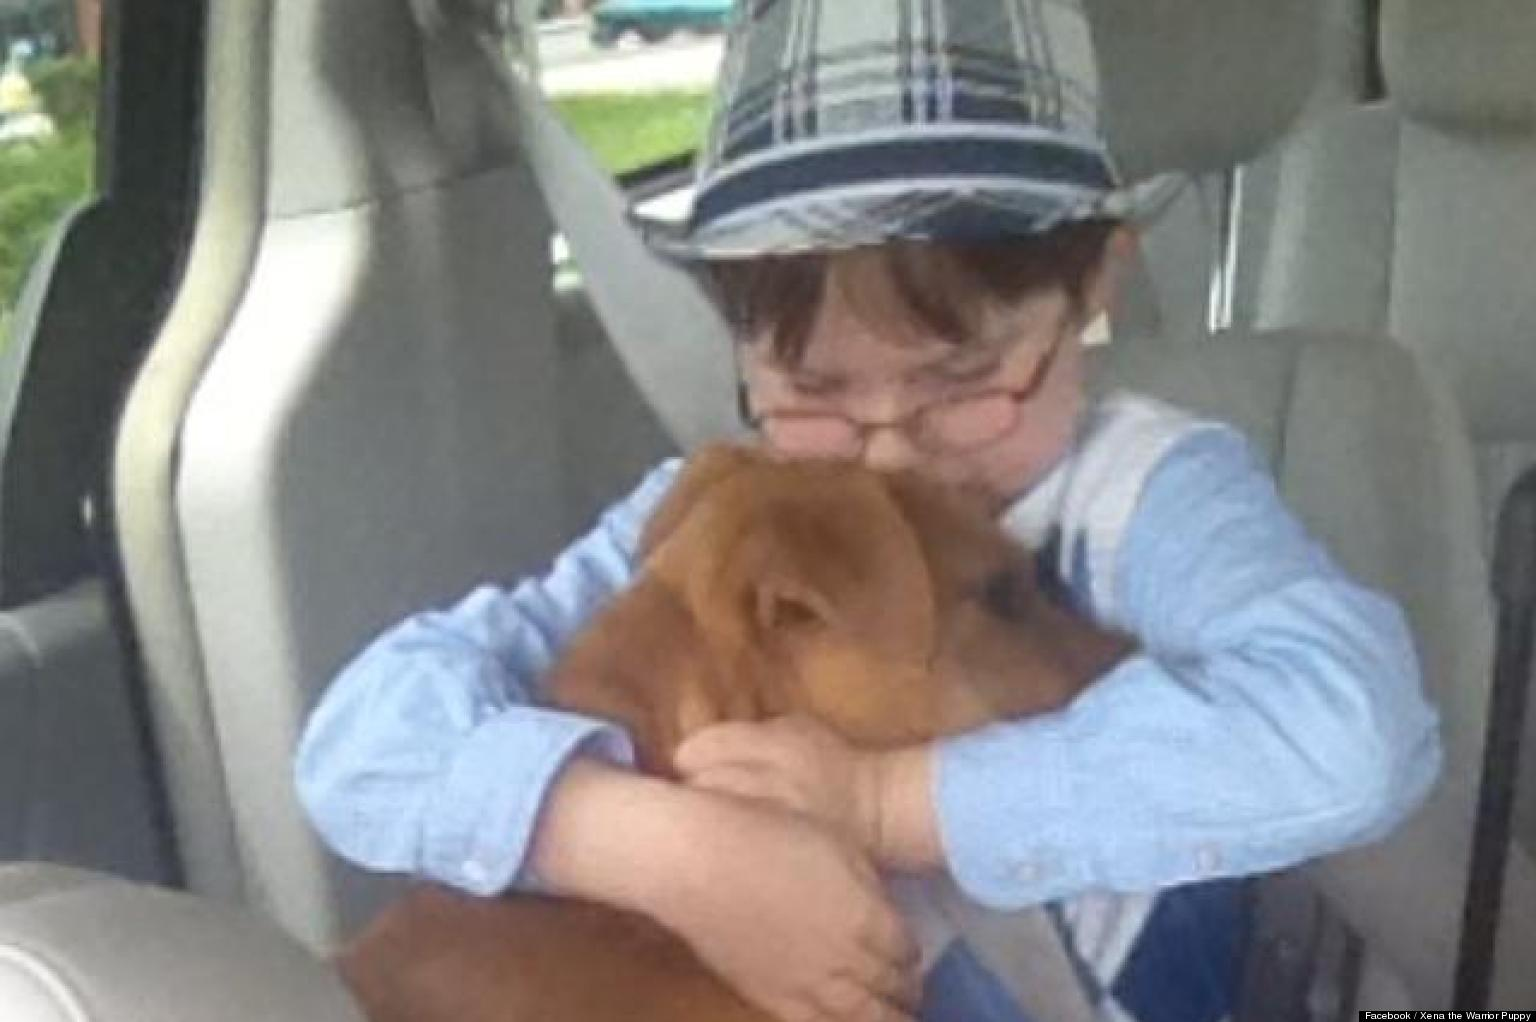 WATCH: Autistic Boy's Heartwarming Friendship With Severely Abused Puppy